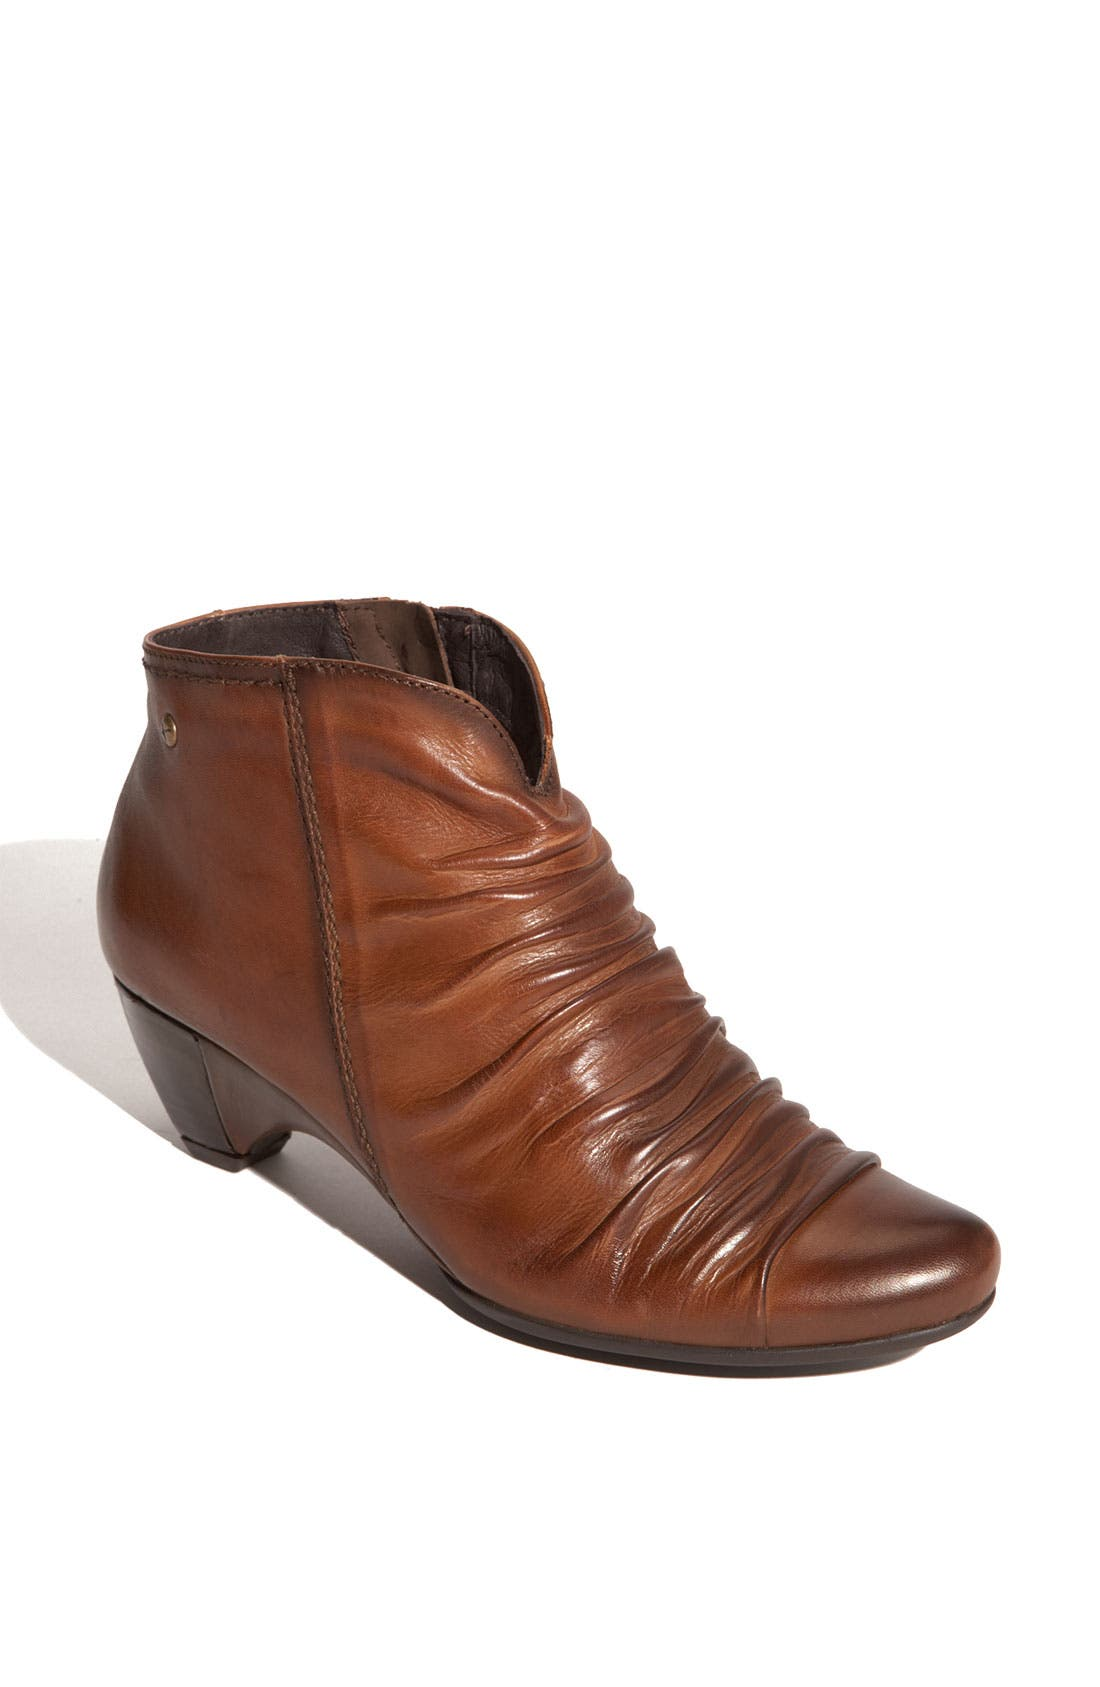 Alternate Image 1 Selected - PIKOLINOS 'Ginebra' Ankle Boot